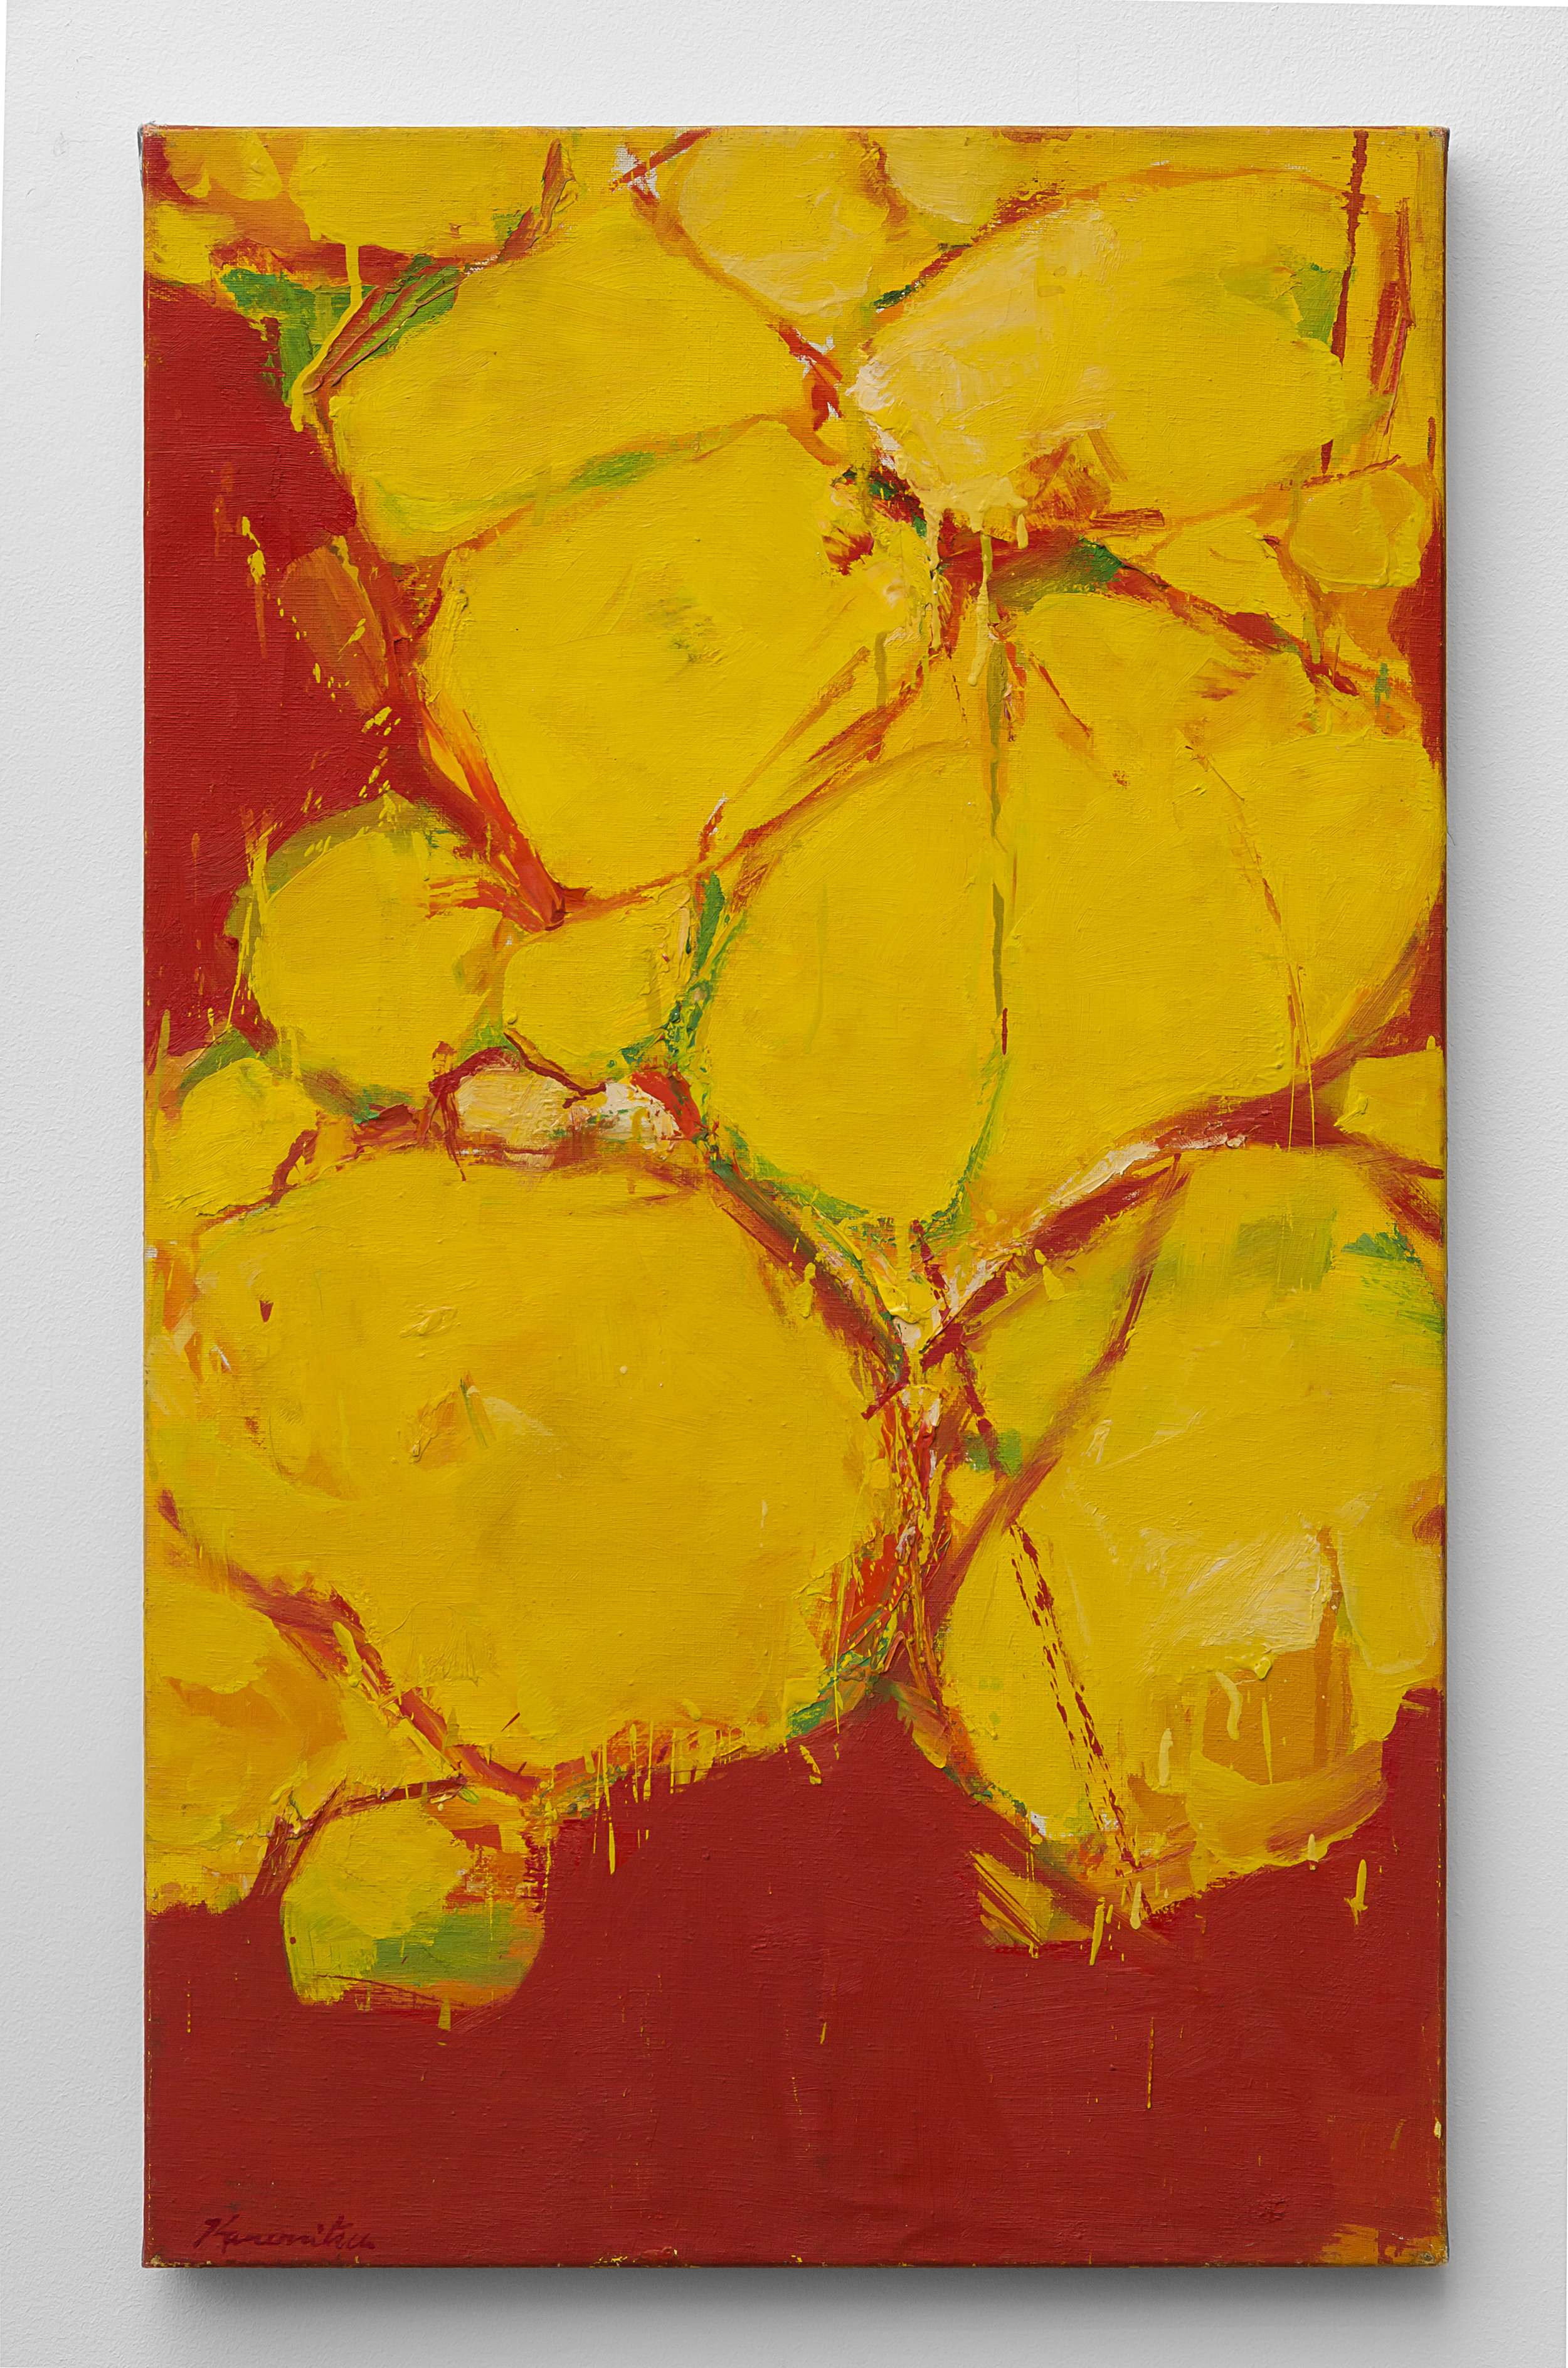 Untitled (Yellow) , 1960 acrylic on canvas 30 x 18 inches; 76.2 x 45.7